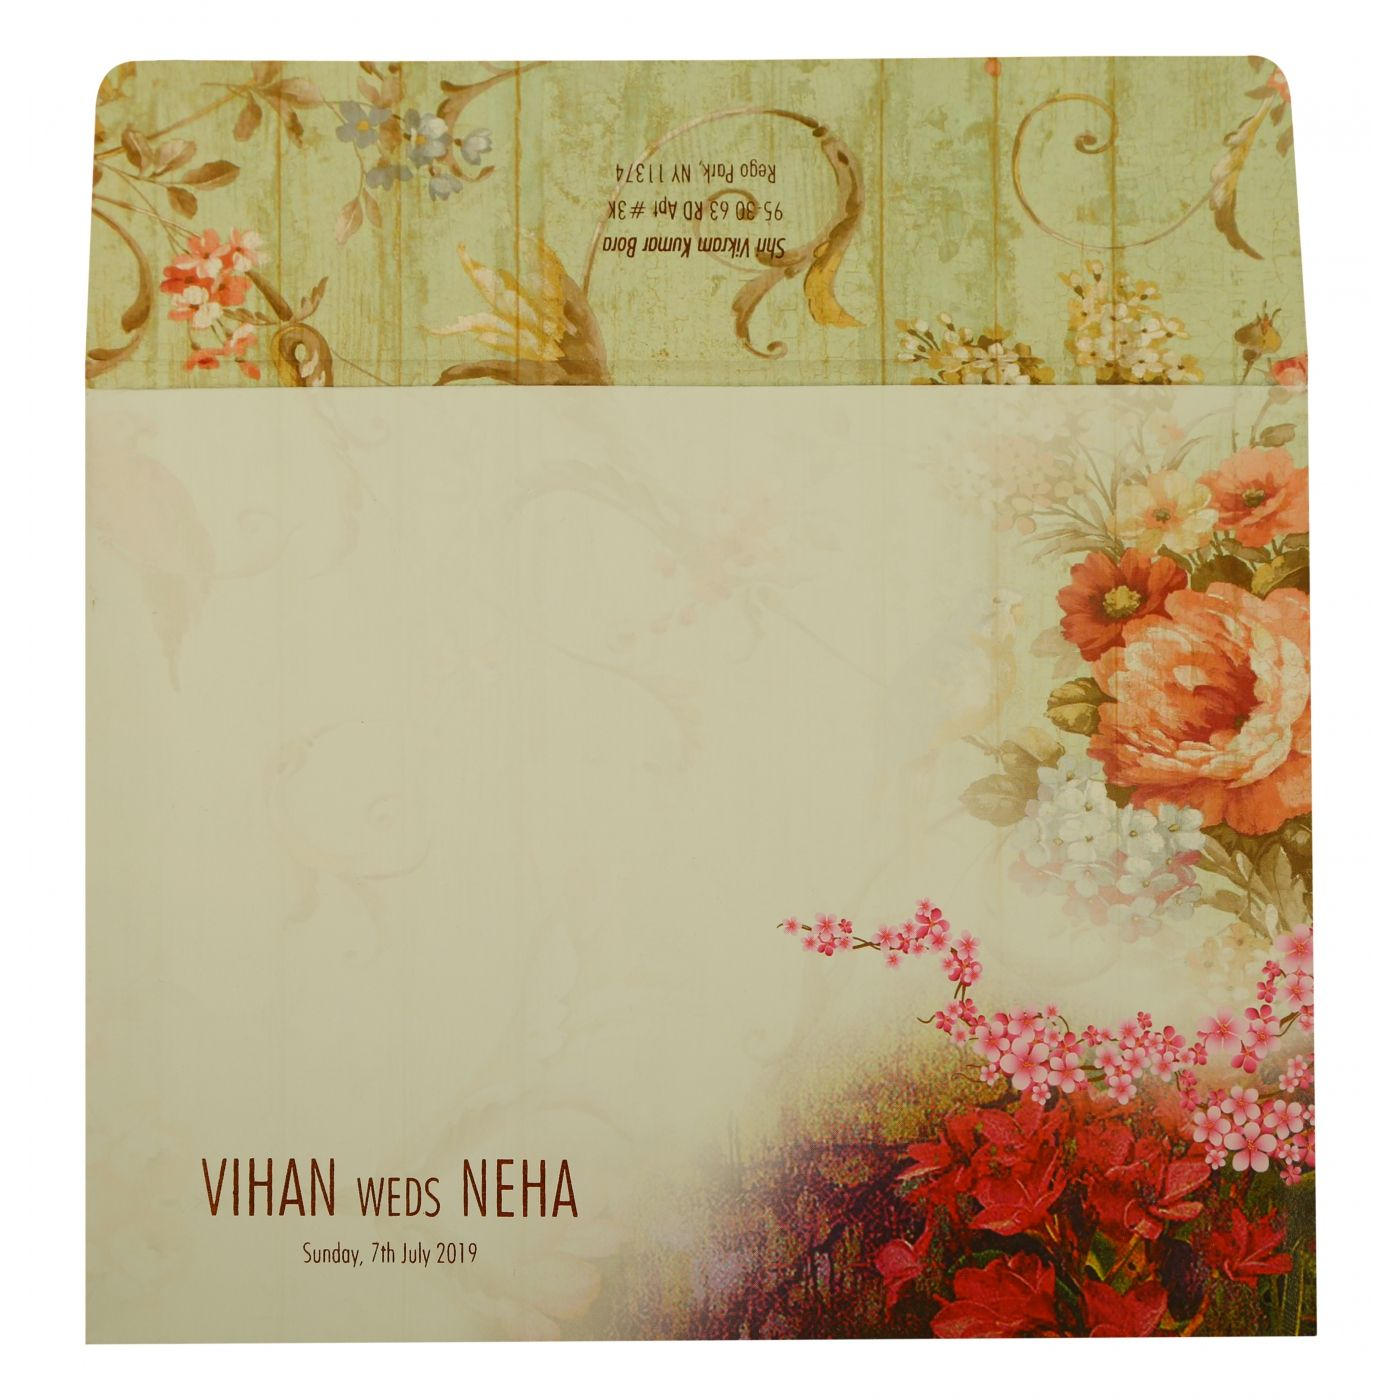 OFF-WHITE MATTE FLORAL THEMED - OFFSET PRINTED WEDDING INVITATION : CD-1932 - IndianWeddingCards